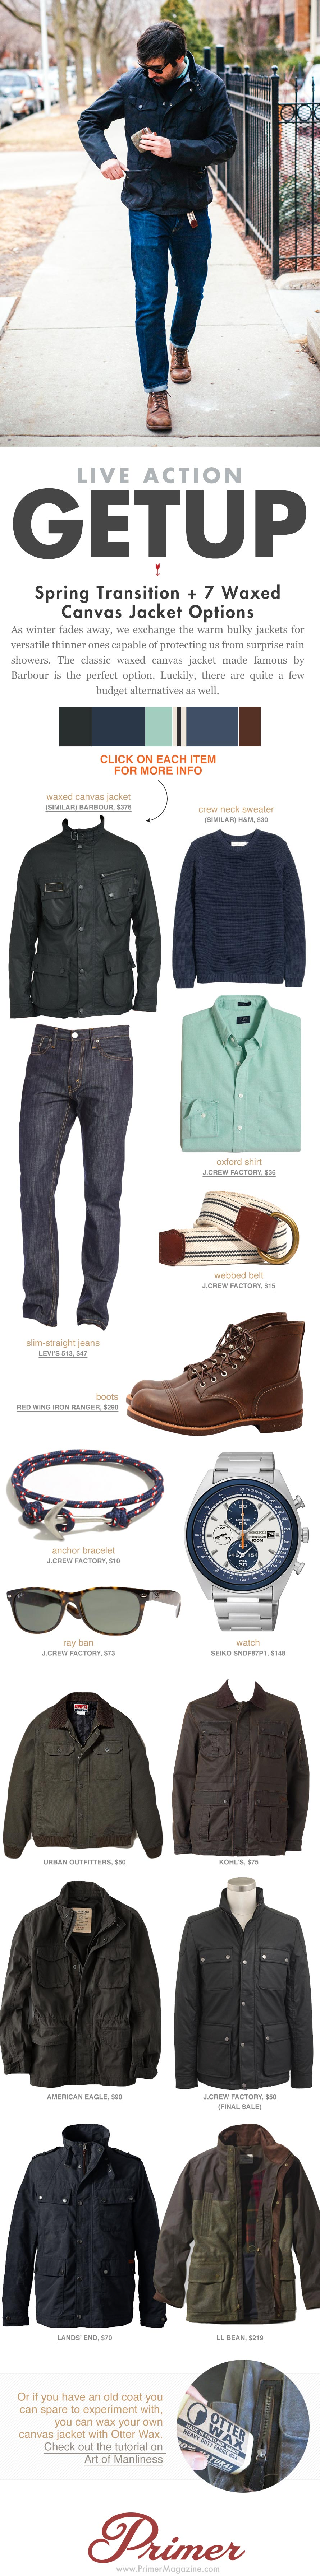 Getup Spring Transition - Jacket, oxford shirt, slim jeans, and Iron Ranger boots